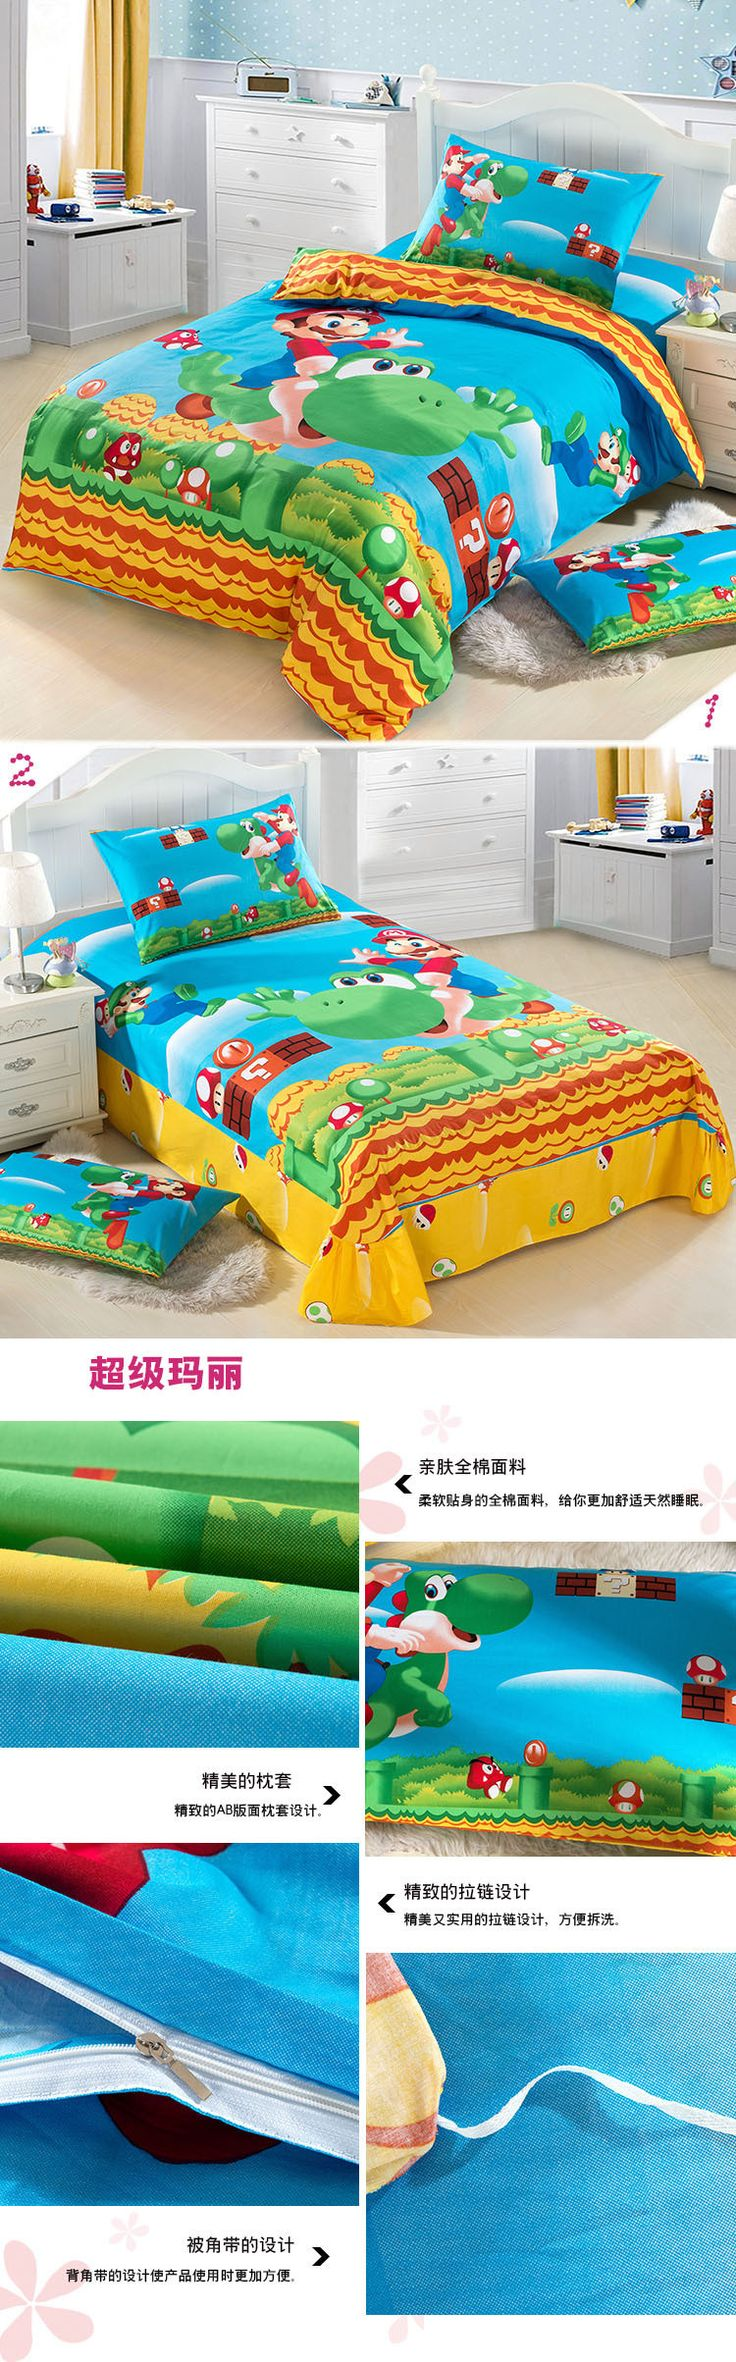 Japanese Kids Character Super Mario Bedding Set Pure Cotton Printed Fabric Single Bed Sheets Pillowcase Duvet Cover for Children-in Bedding Sets from Home & Garden on Aliexpress.com | Alibaba Group